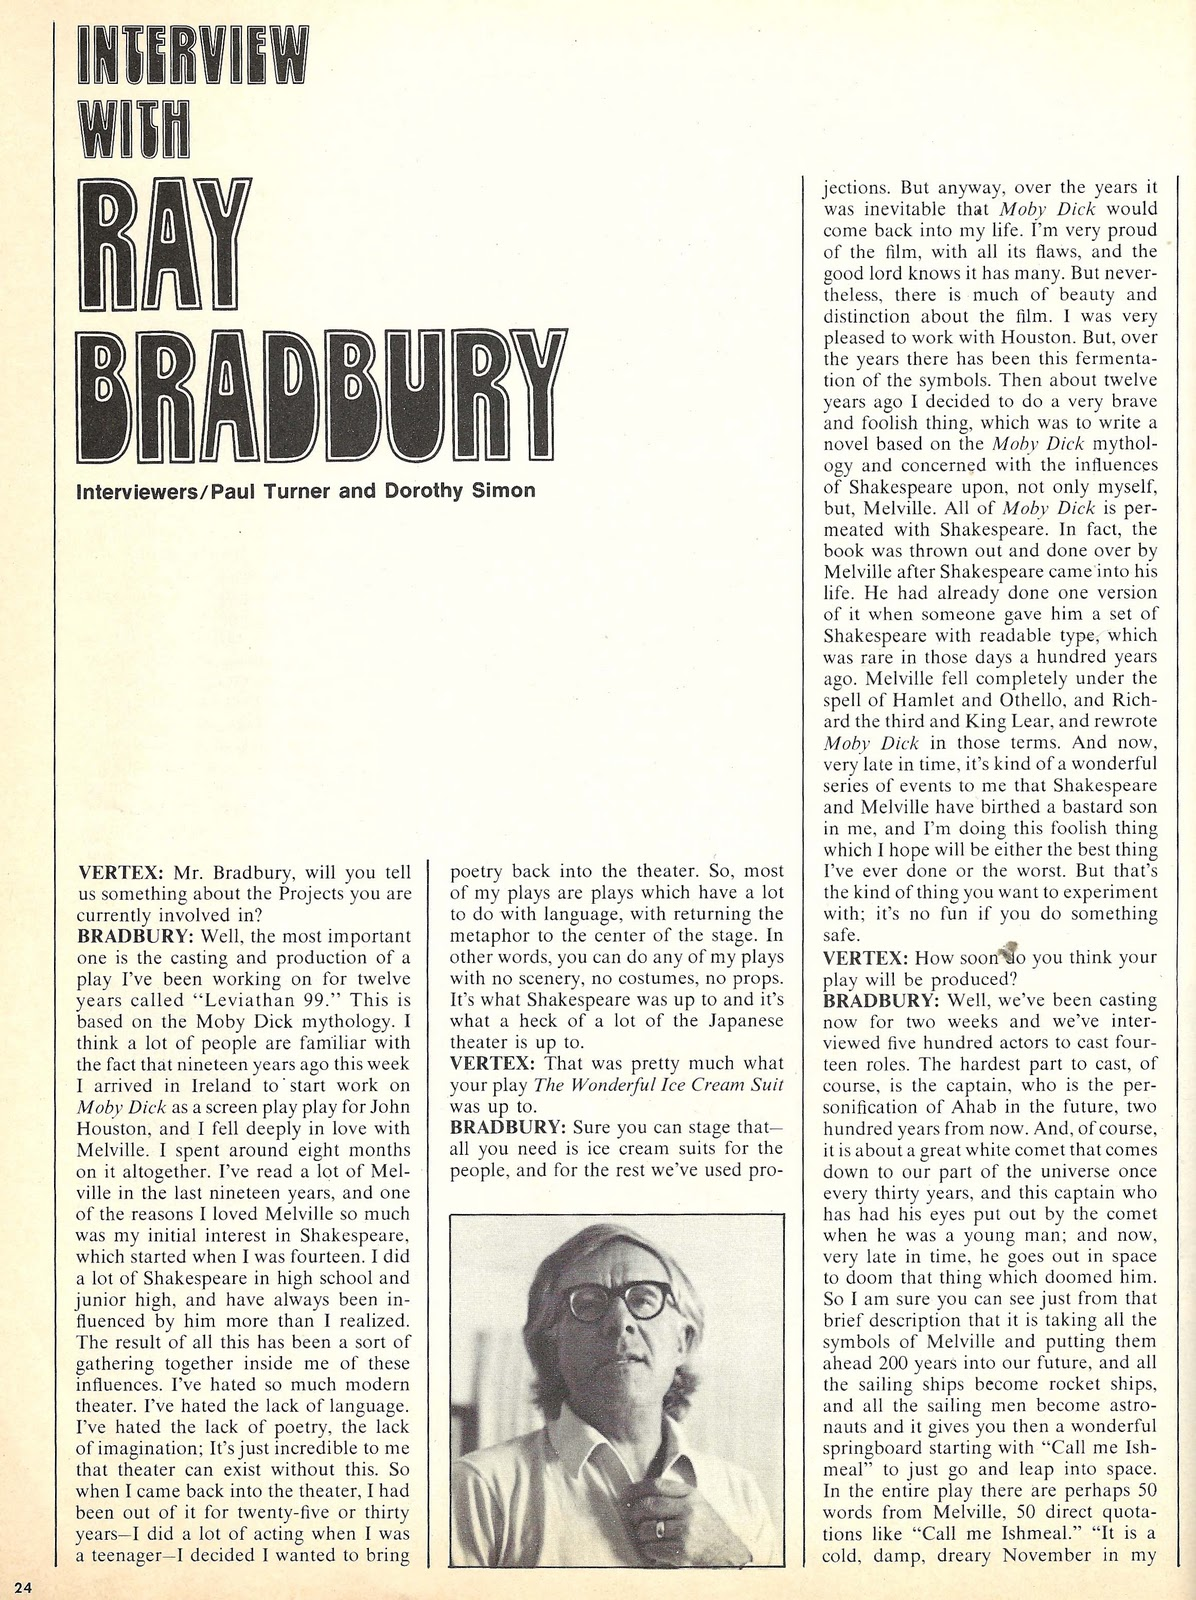 ray bradbury essays cruel angel thesis sheet music resume example  best resume forms classroom assistant resume help me write ray bradbury essays online arbeitsplan dissertation meaning